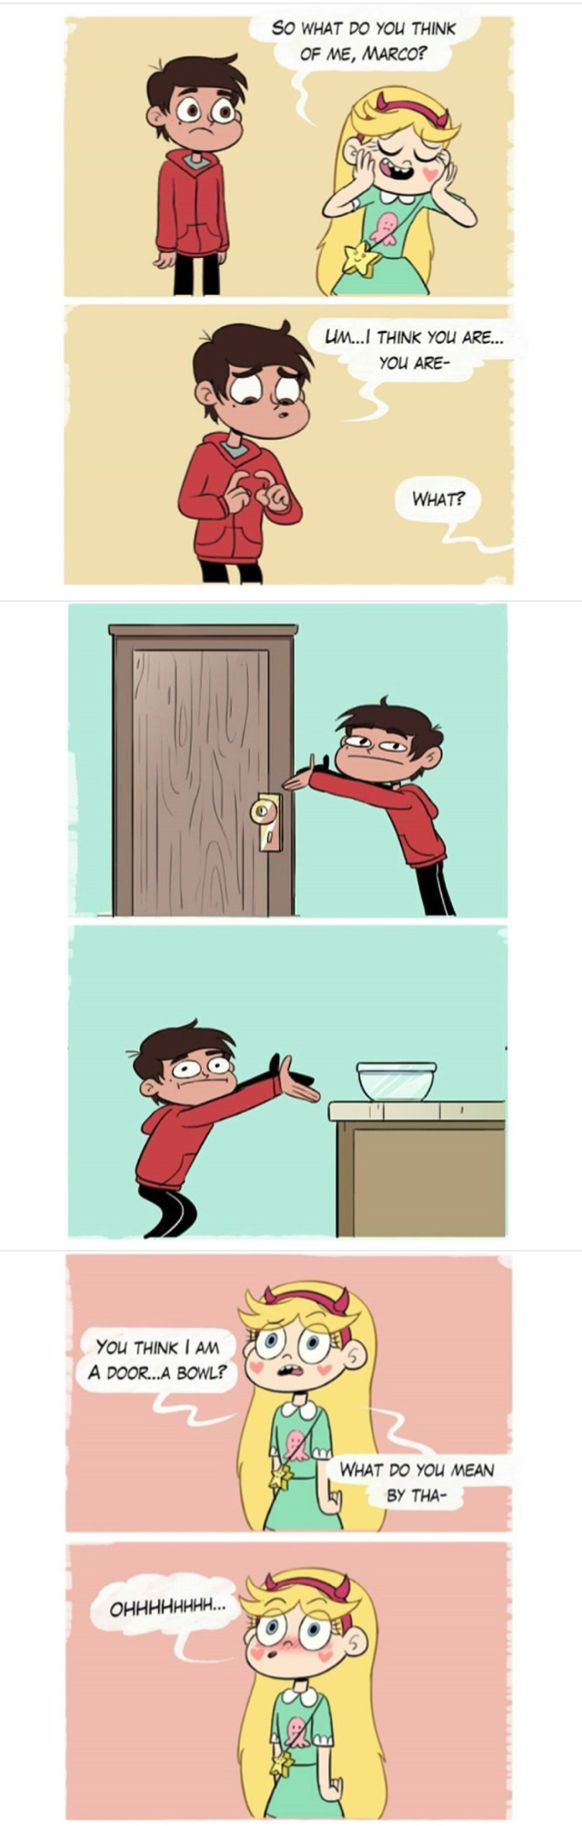 YESSS PLEASE STARCO IS LIFE Credit to Moringmark   |Star vs the Forces of Evil|